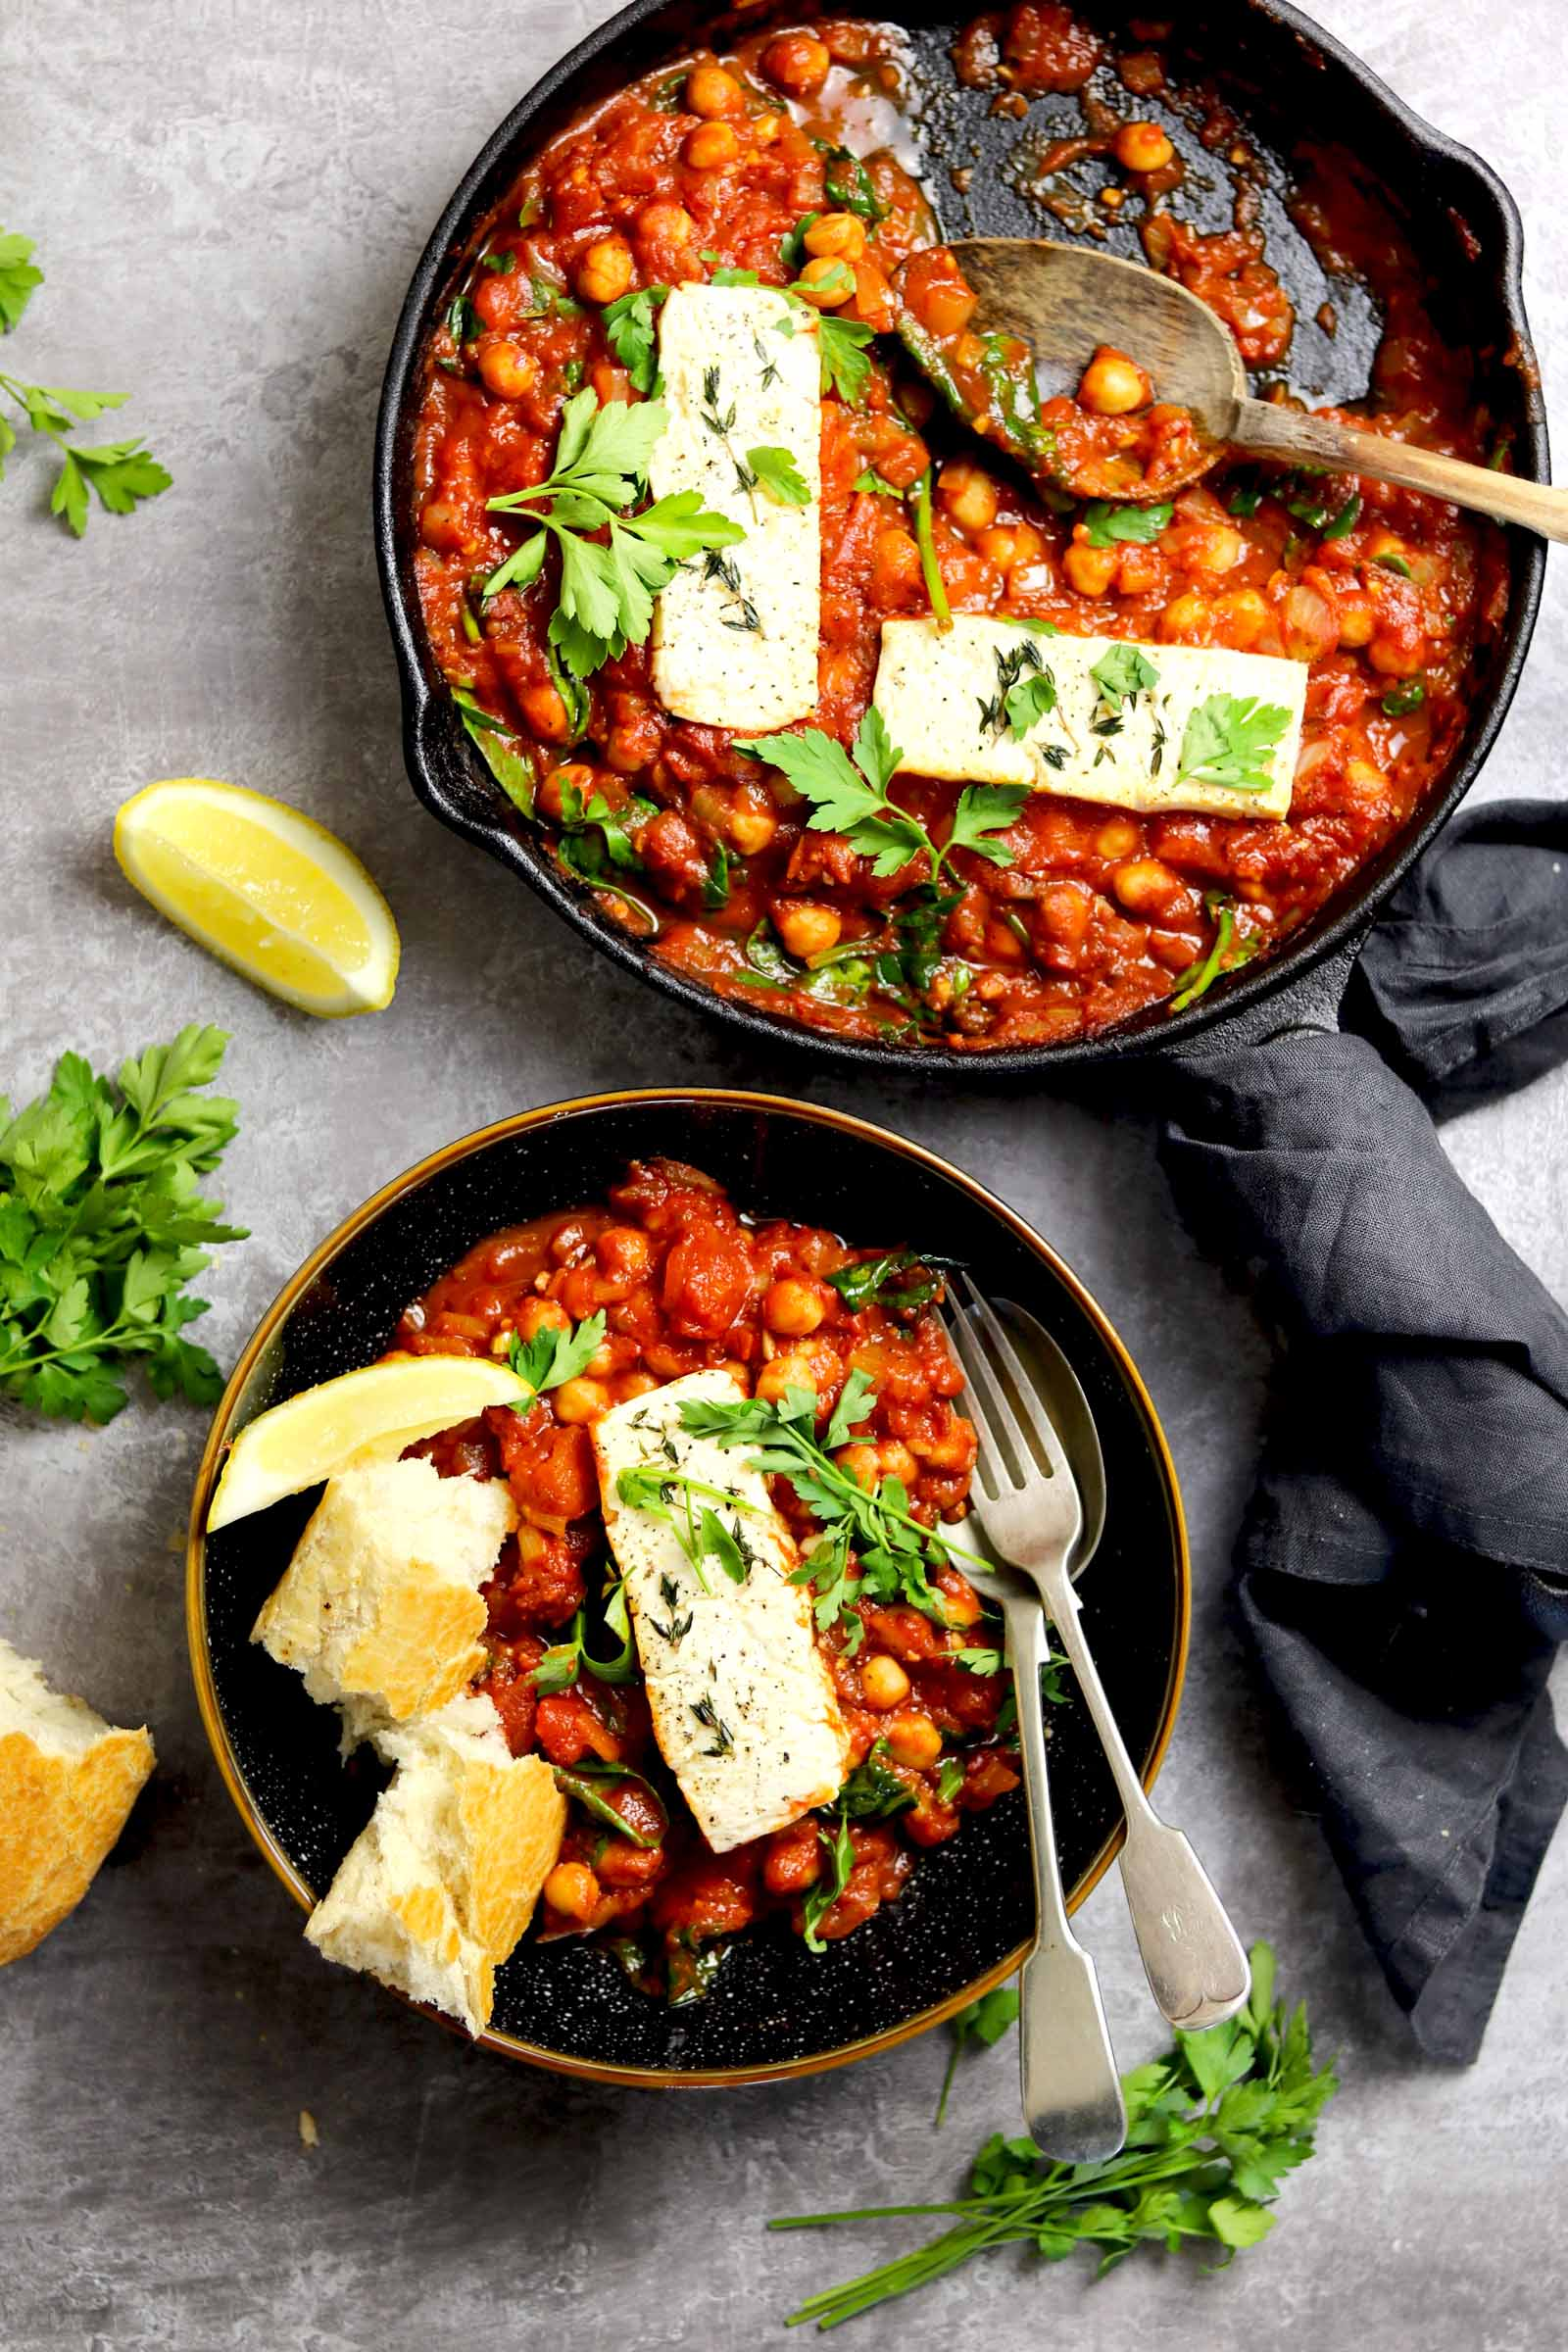 Baked Feta with Chickpeas - in bowl and pan